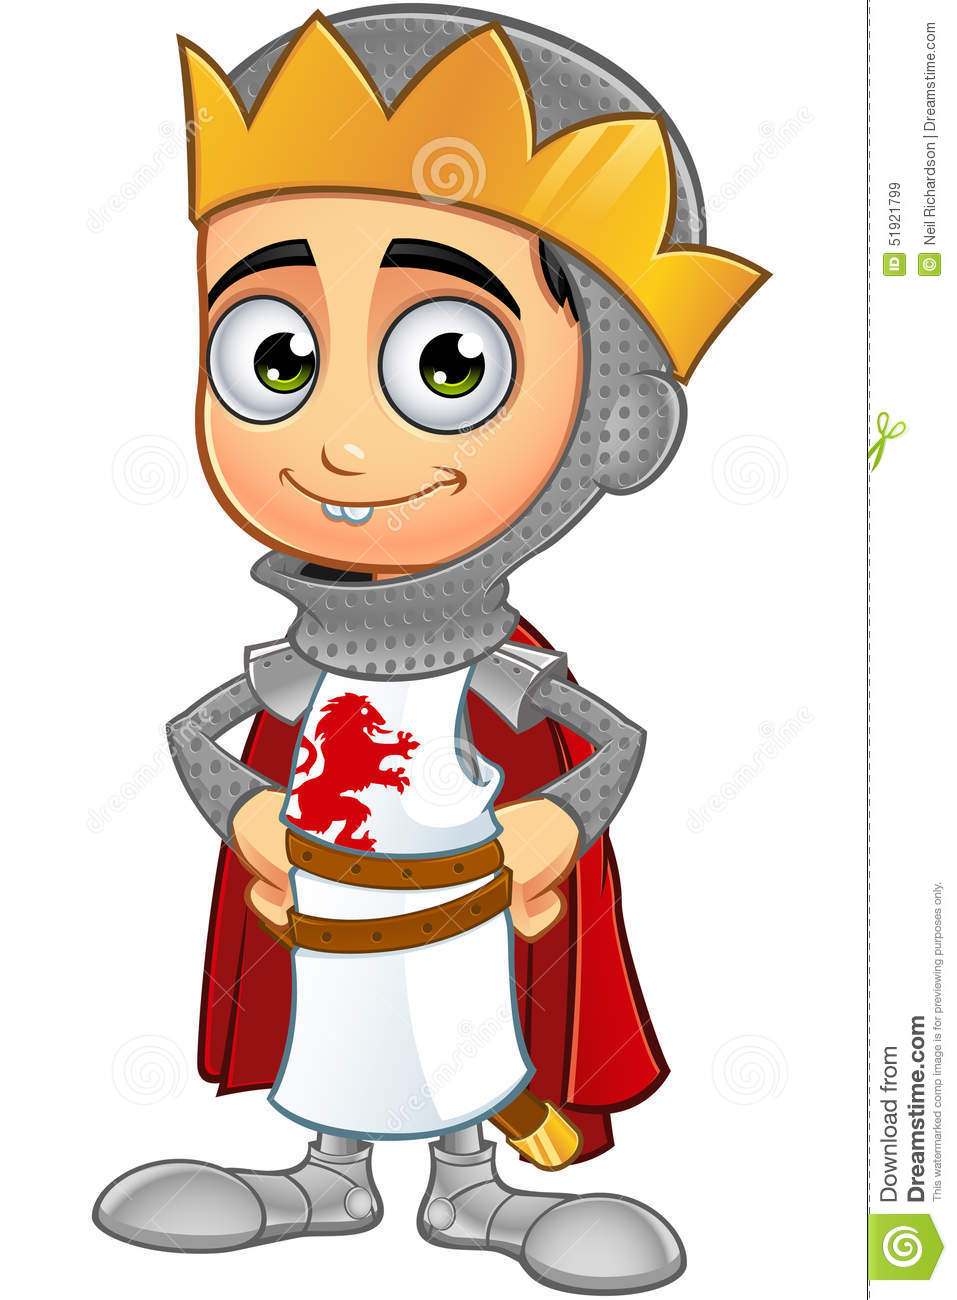 St George Boy King Character Stock Vector Image 51921799